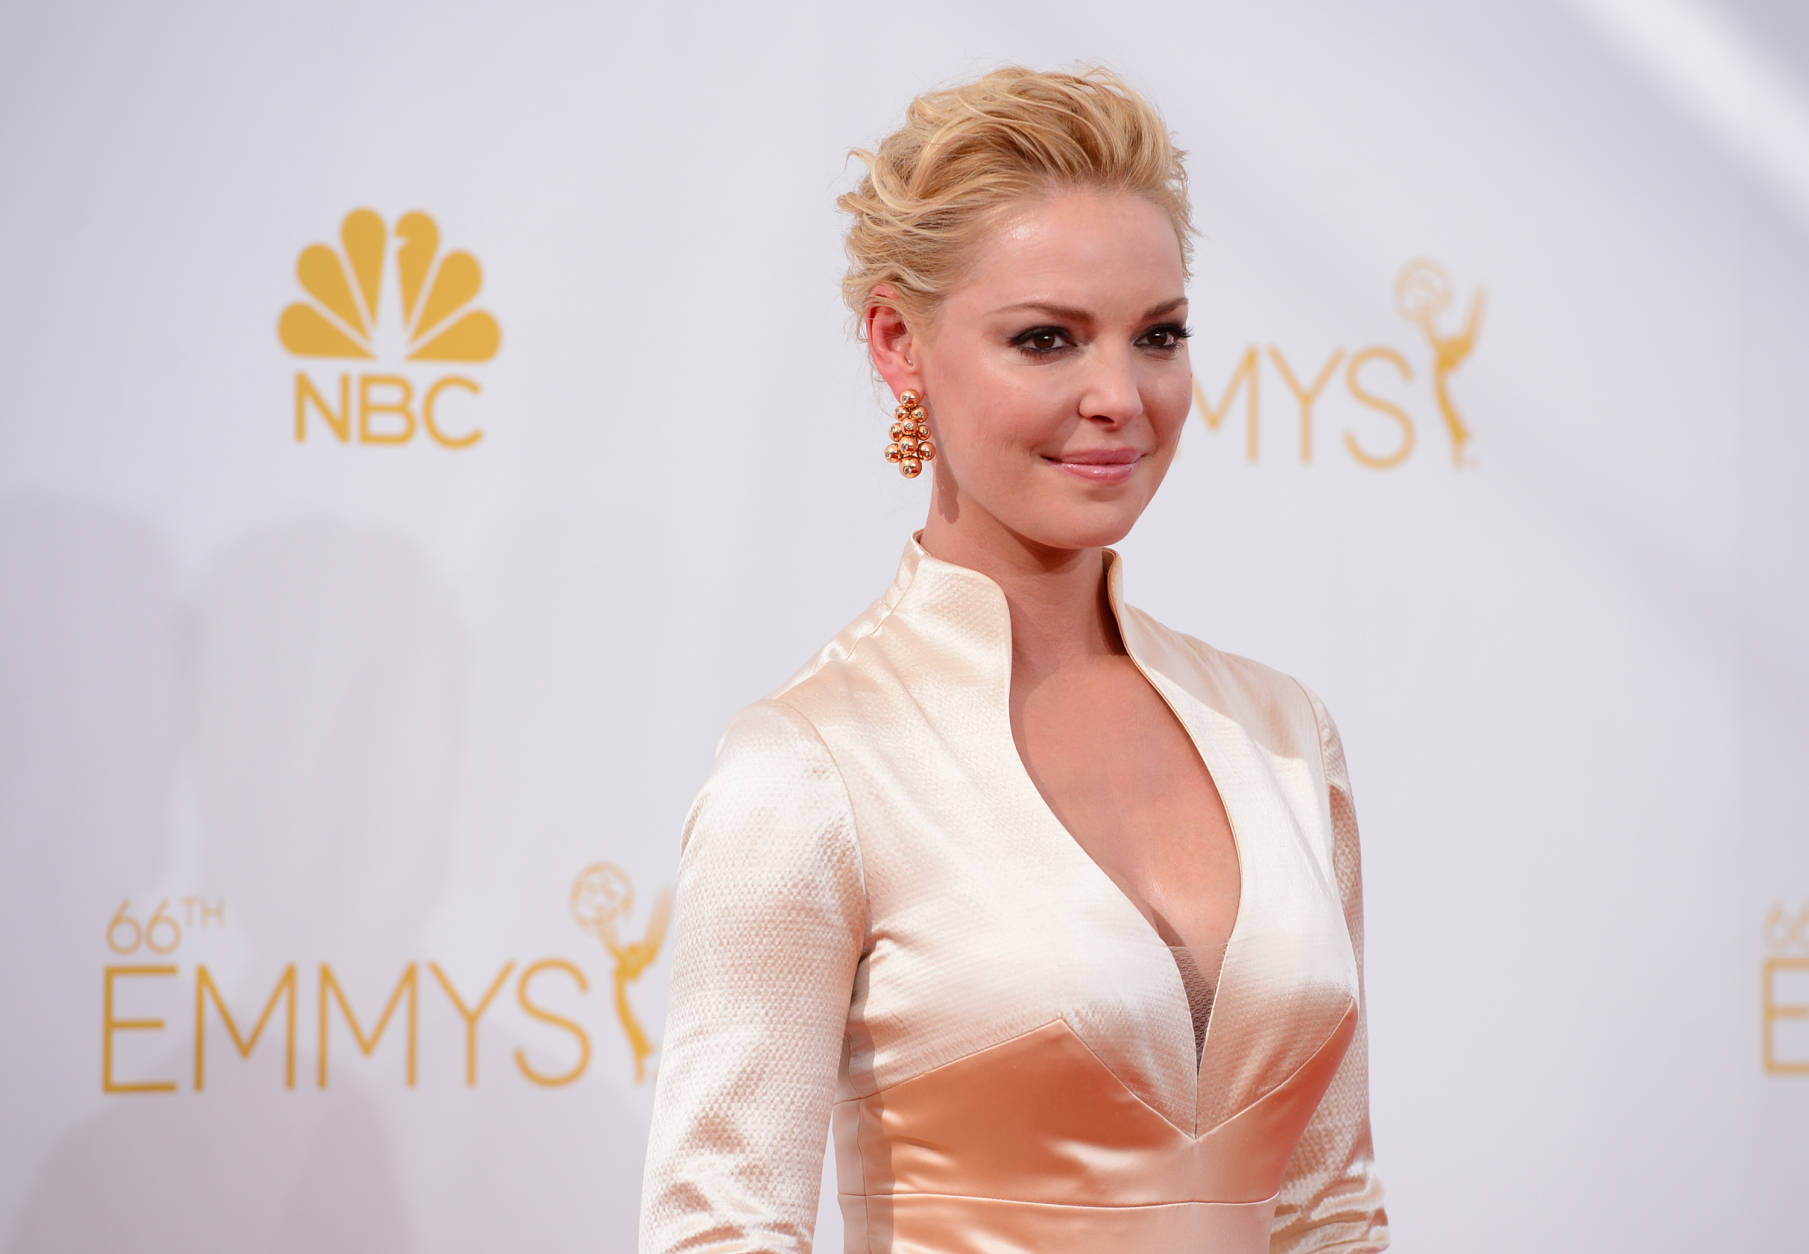 Katherine Heigl arrives at the 66th Annual Primetime Emmy Awards at the Nokia Theatre L.A. Live on Monday, Aug. 25, 2014, in Los Angeles. (Photo by Jordan Strauss/Invision/AP)